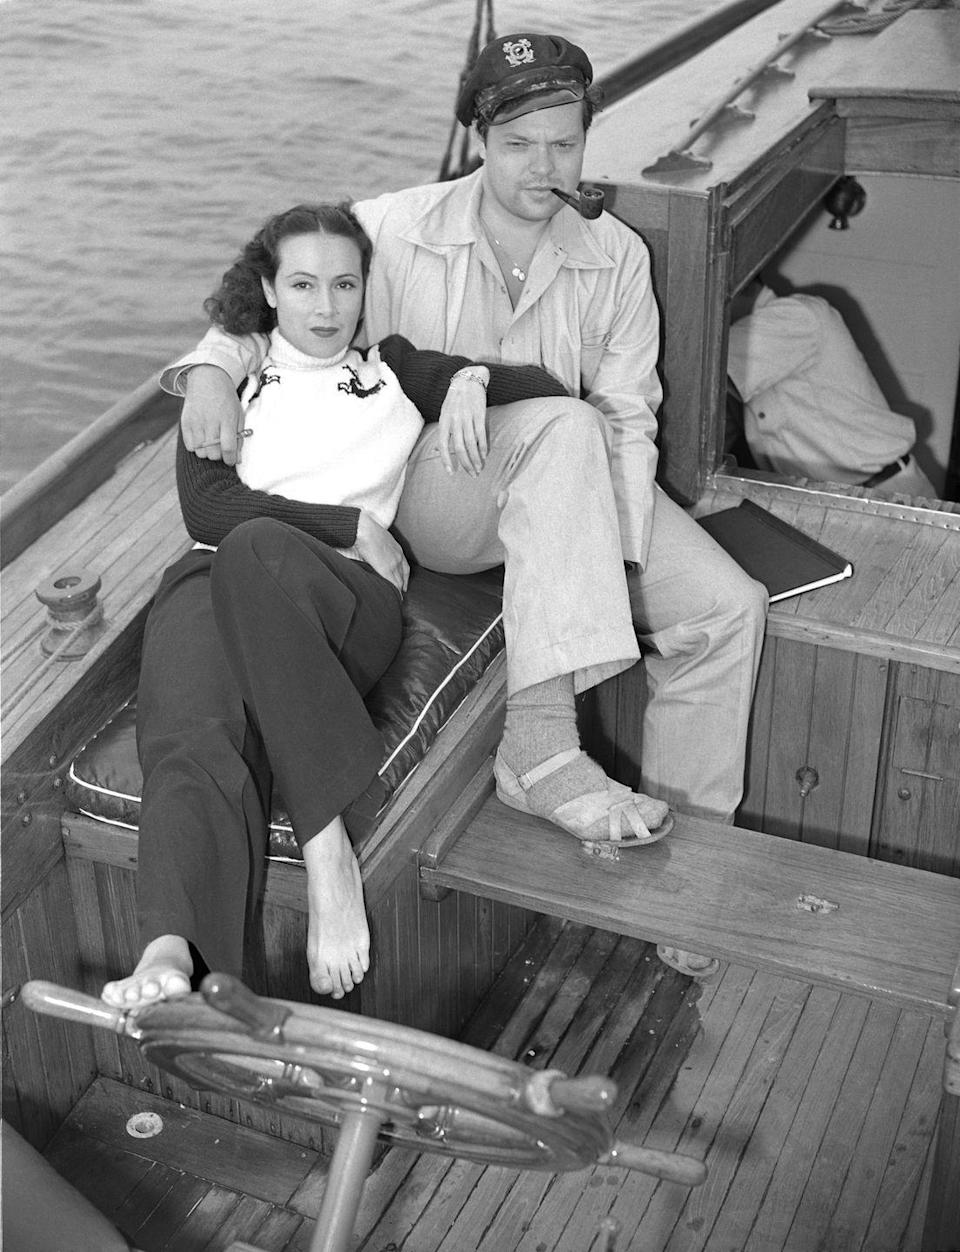 <p>Dolores del Río and Orson Welles enjoy a day on the water, making use of the stern of their ship for a photo op. The actress casually places her foot on the wheel of the ship, as Welles smokes a pipe. </p>